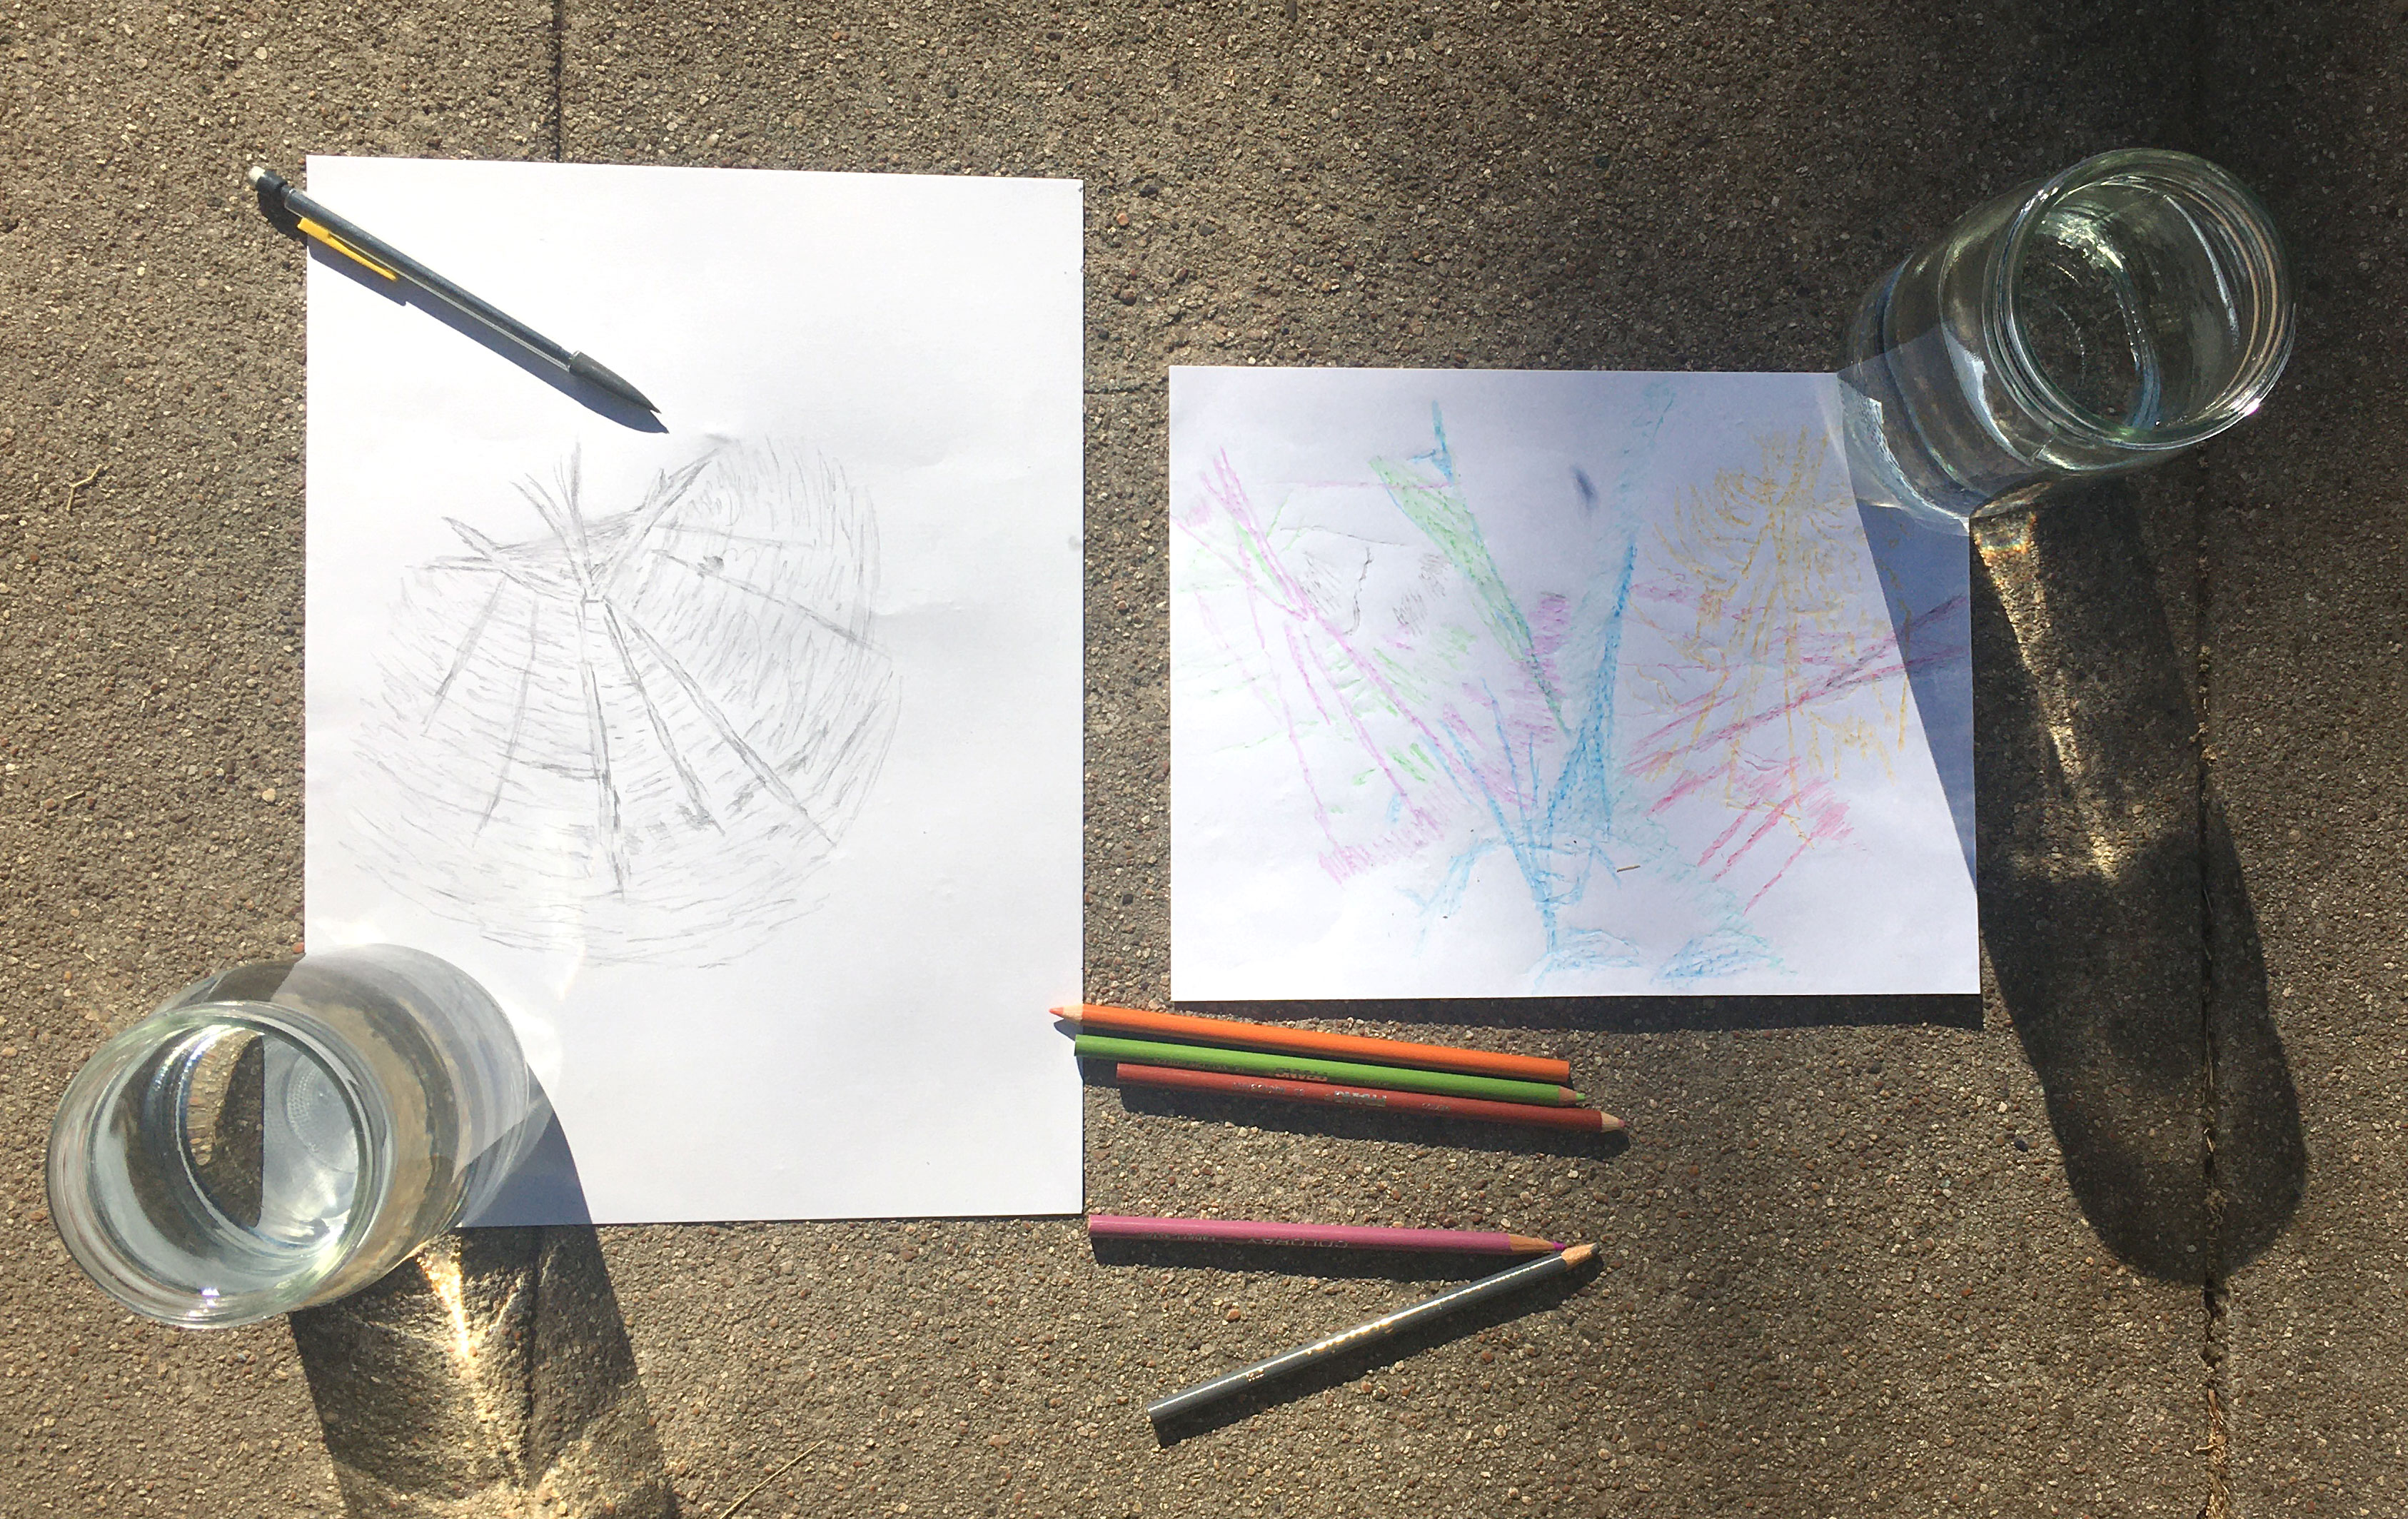 Artwork with colored pencils and regular pencil created by tracing the lines and shapes of sun shining through a water filled glass.